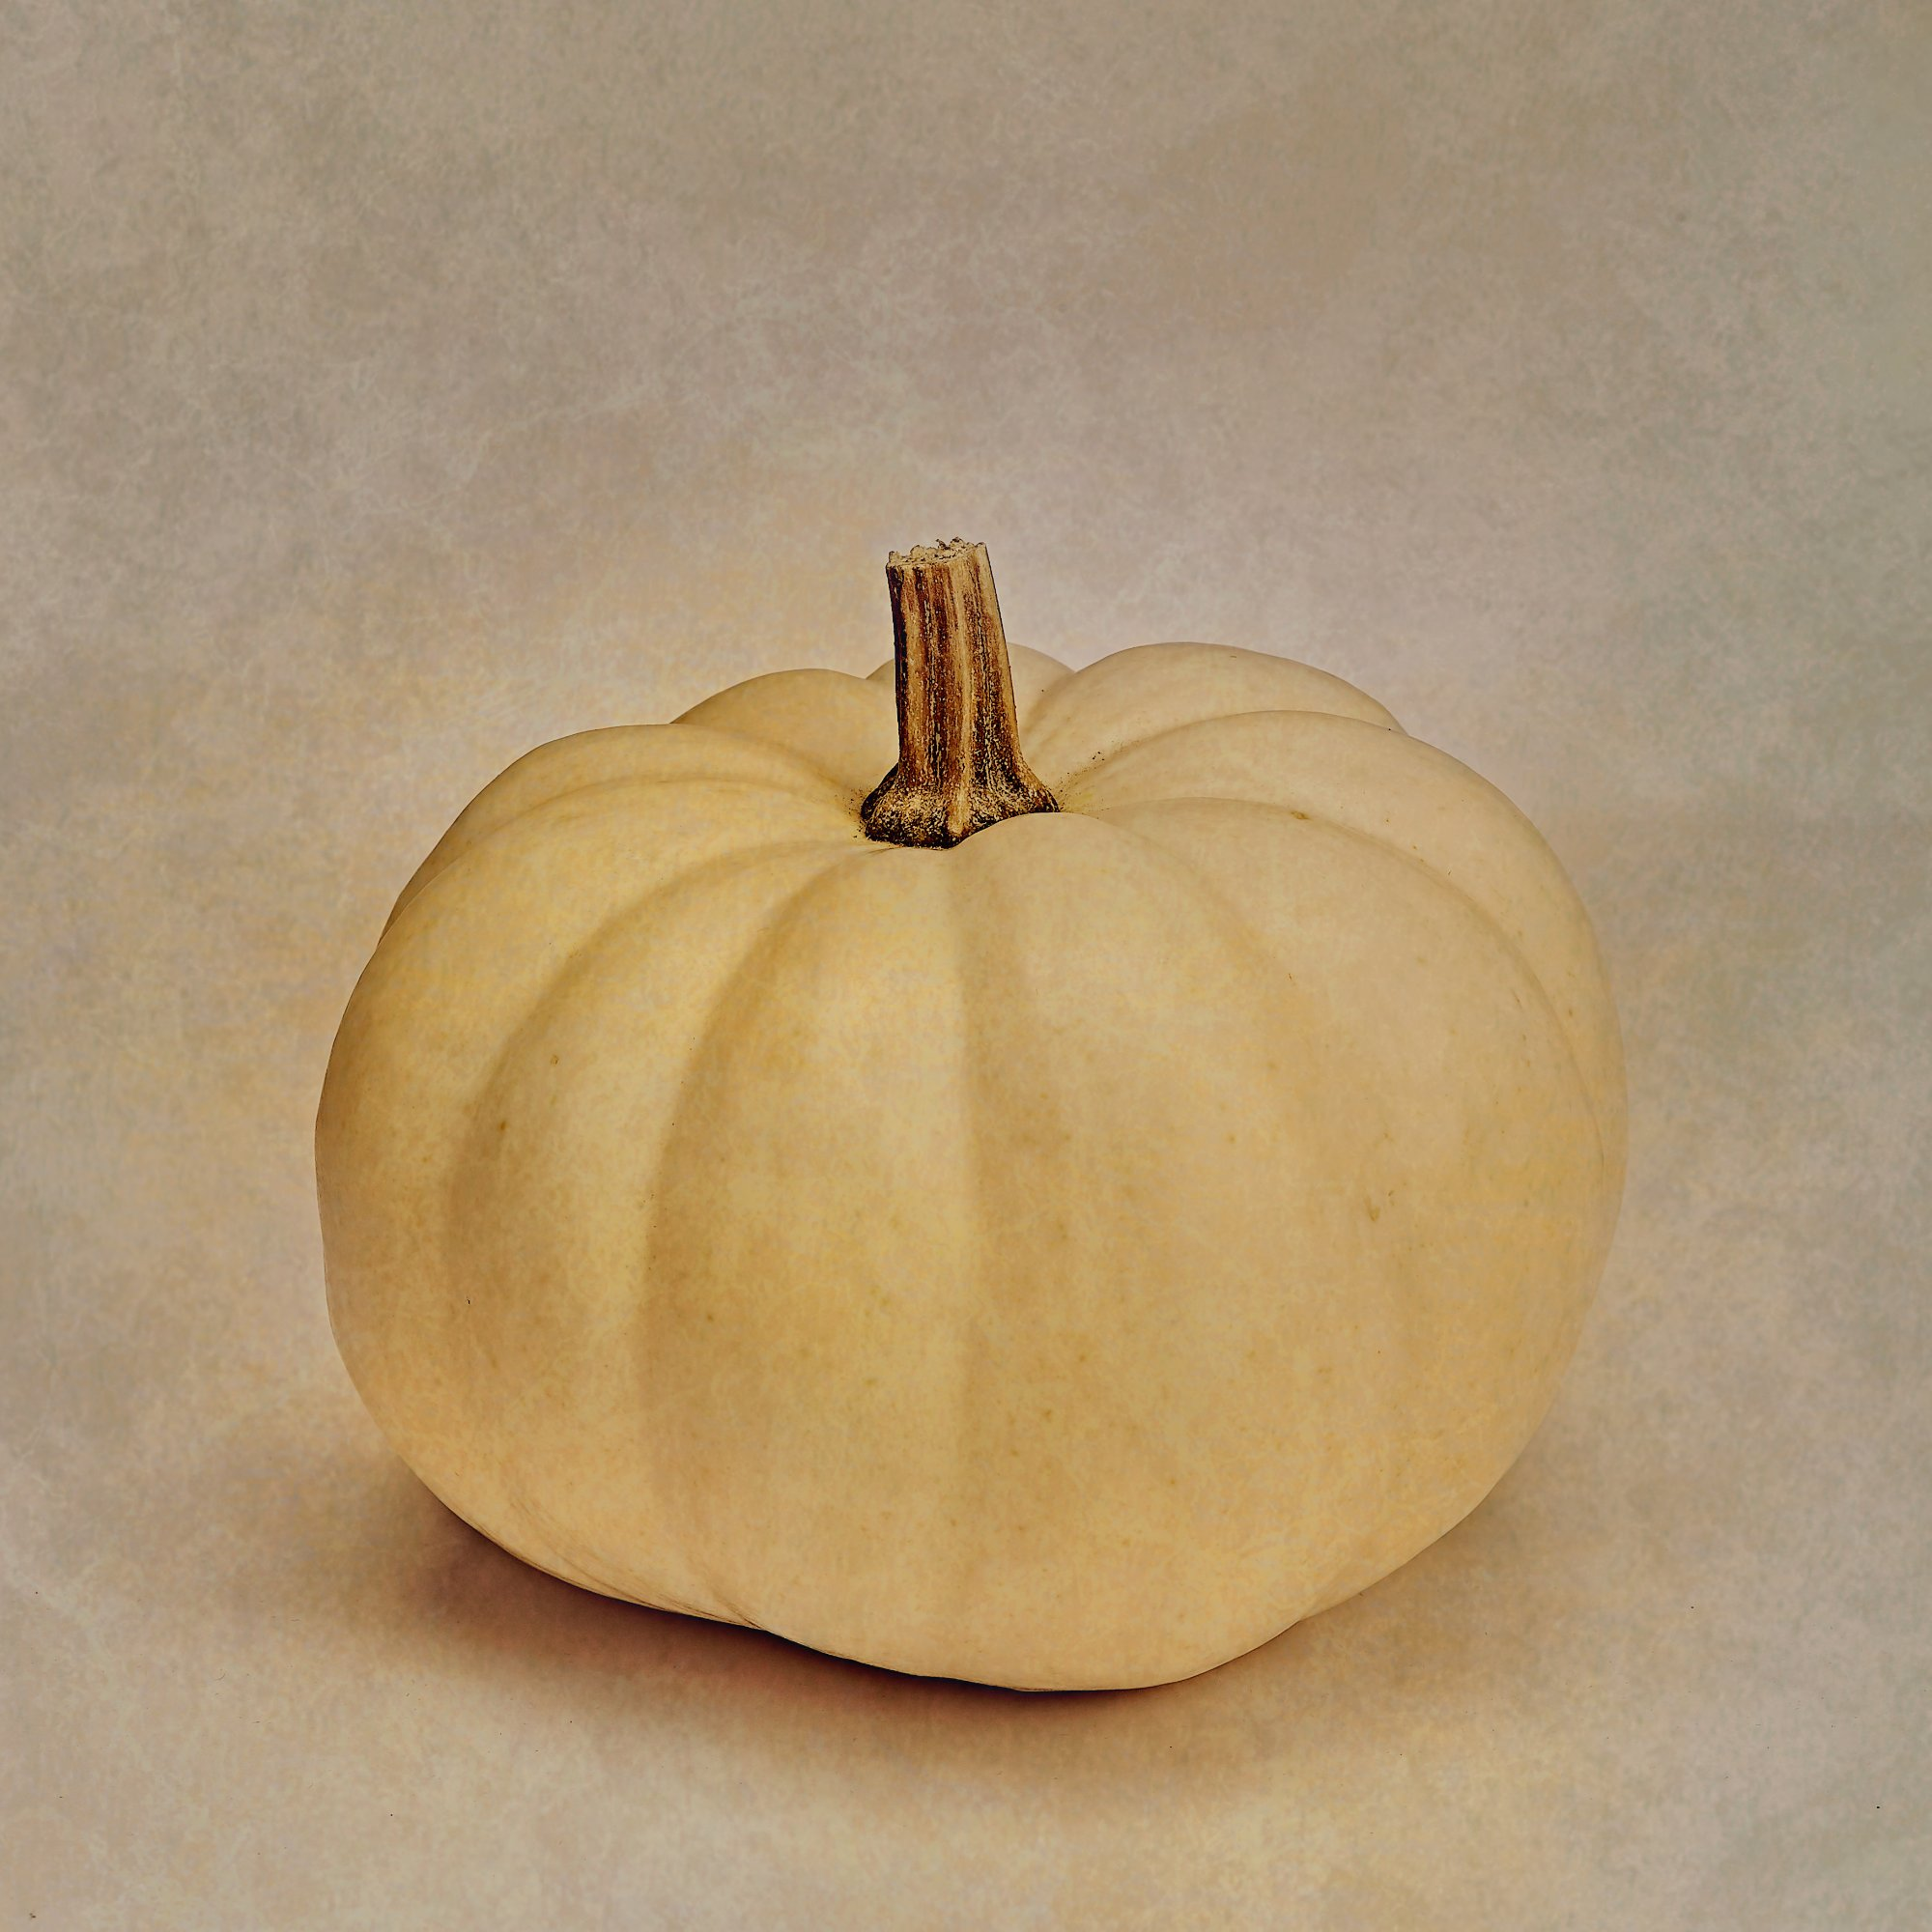 Luca Brogi Photographer – Pumpkin